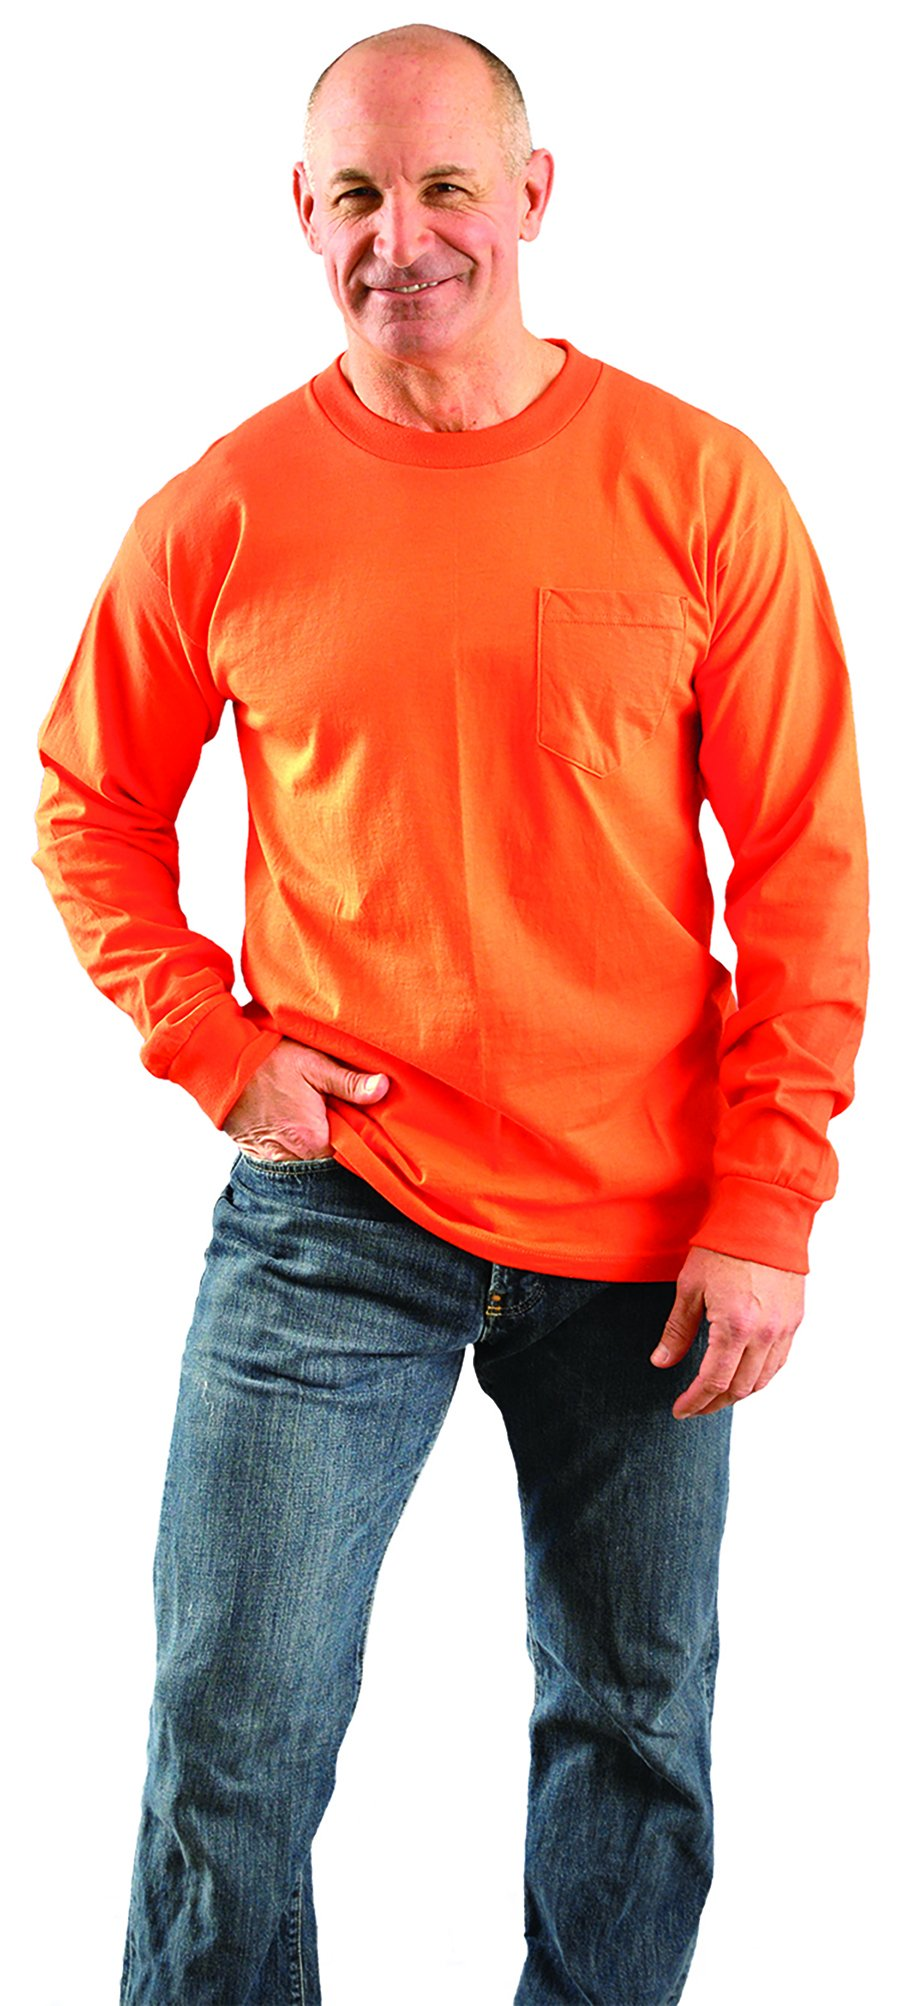 OccuNomix LUX-300LP-07L Classic Long Sleeve 100% Pre-Shrunk Cotton T-Shirt with Pocket, Non-ANSI, Large, Orange (High Visibility) by OccuNomix (Image #2)